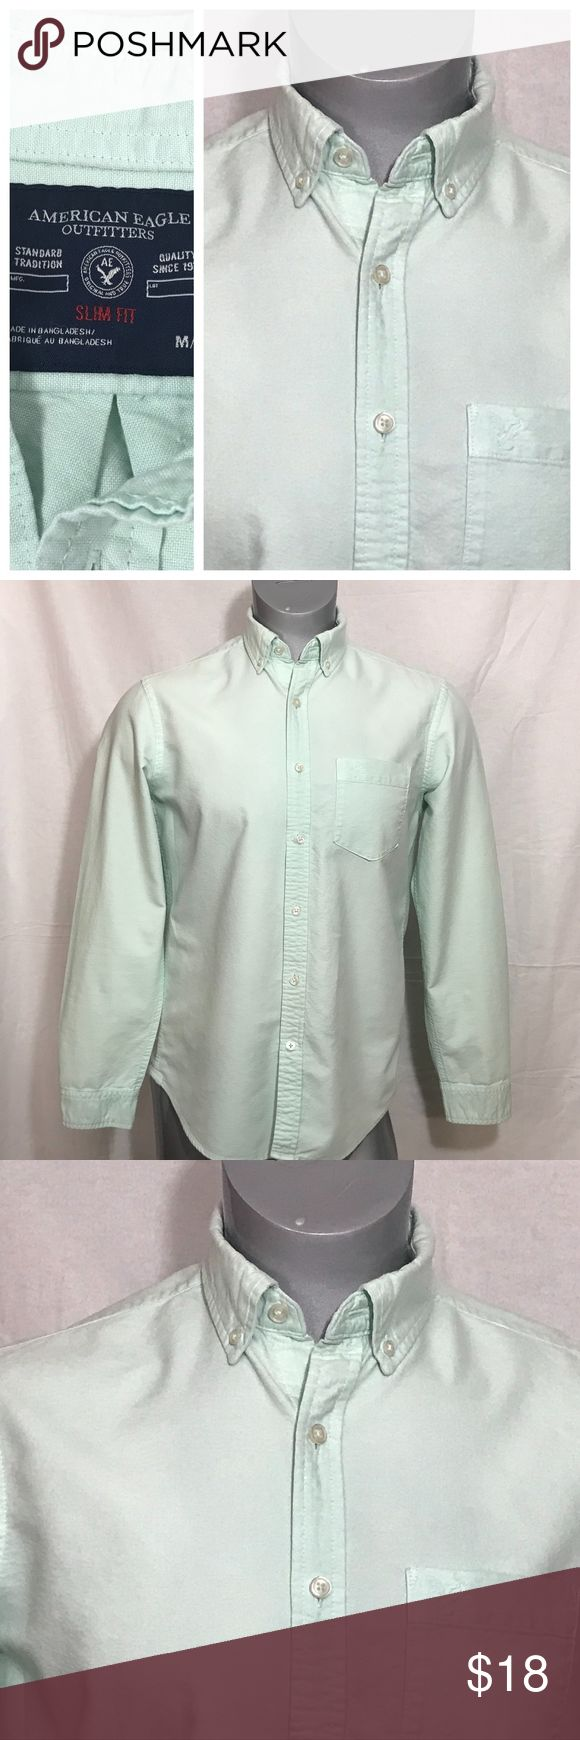 American Eagle Outfitters Men's Mint Shirt Medium Awesome Eagle Outfitters Men's Button Down / Long Sleeve Shirt  Color: Mint Size: Medium  Type: Slim Fit Gently pre-owned condition - thoroughly checked - no tears, holes, snags, fading or stains. (Please see photos in listing) OFFERS ACCEPTED :) Please submit your BEST offer to us. We look forward to satisfying you as a customer. Let's do business! American Eagle Outfitters Shirts Casual Button Down Shirts